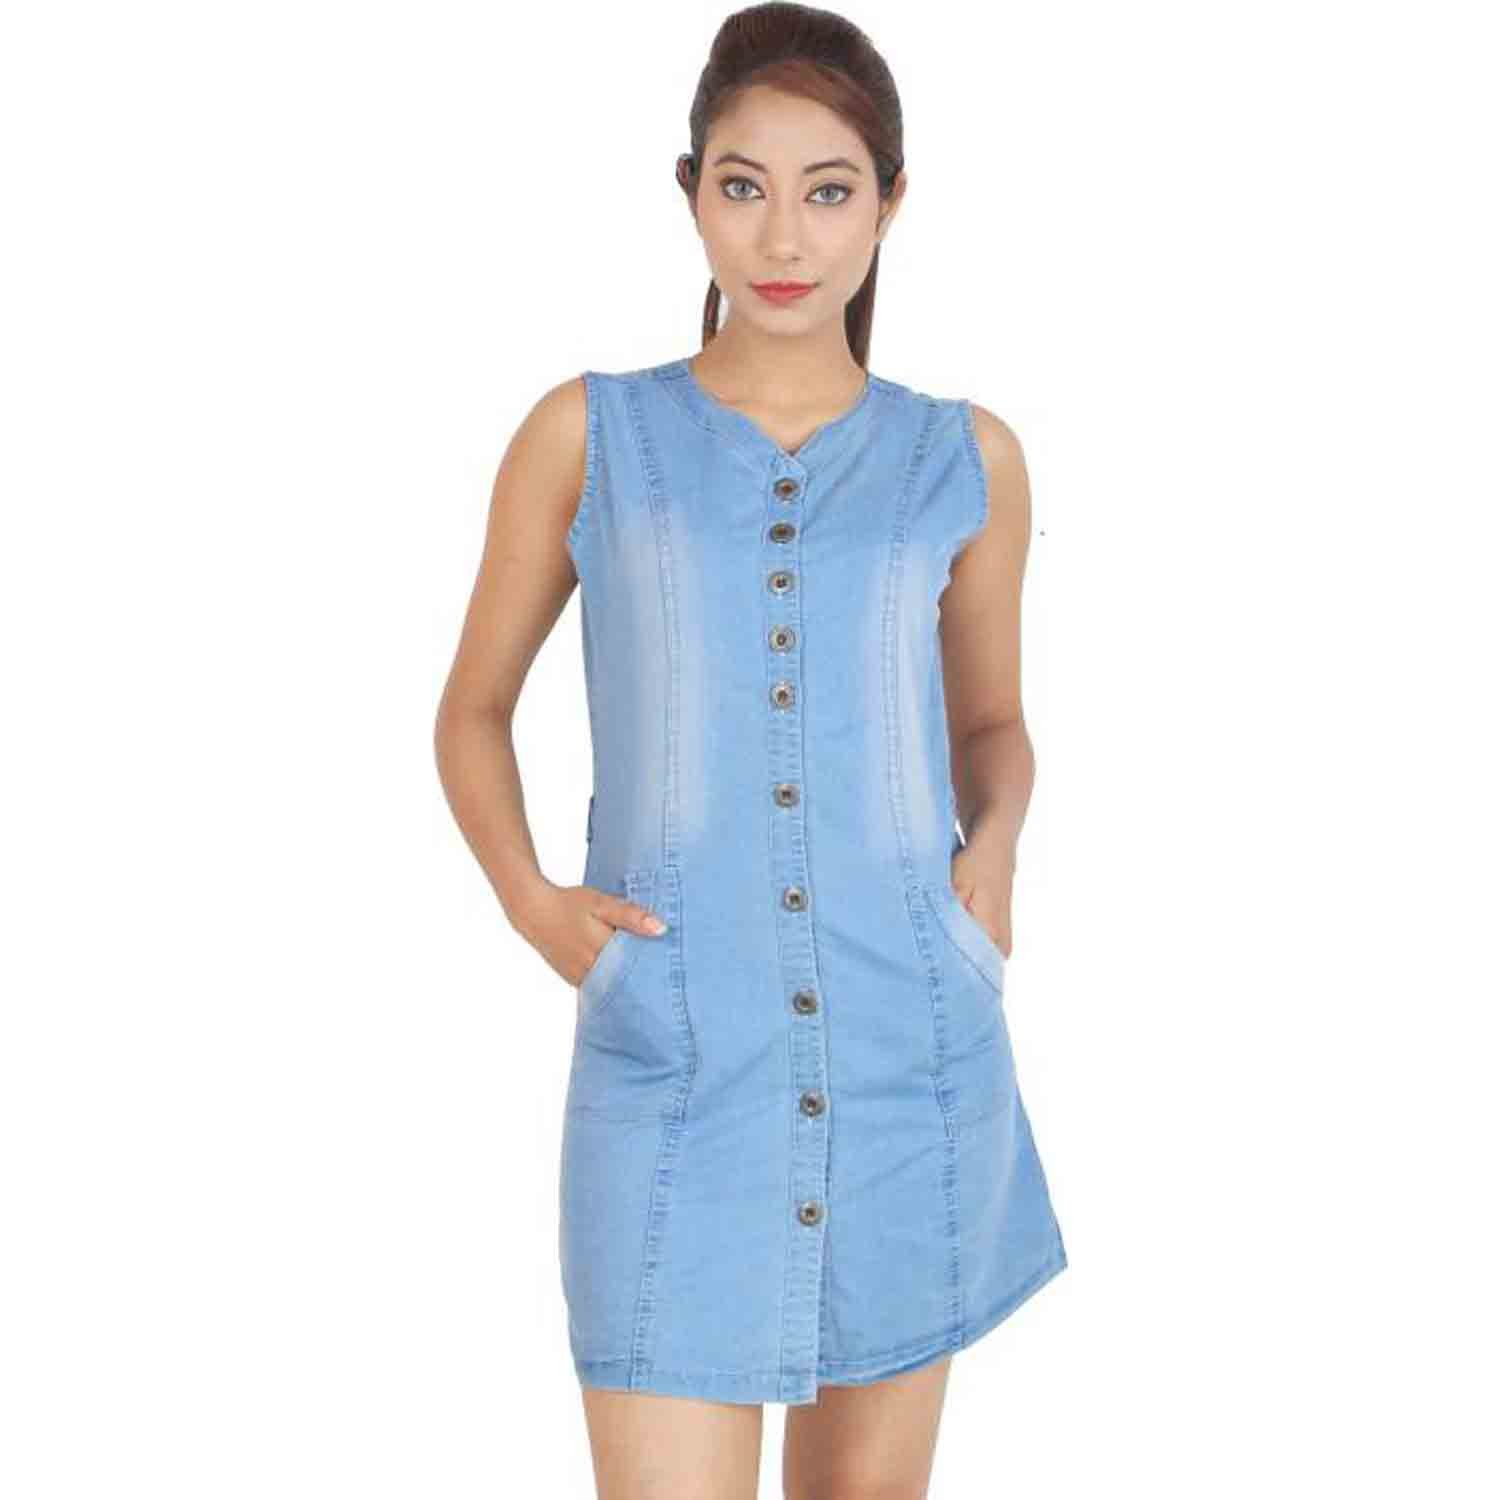 eb0482d919 C.Cozami Women s Solid Formal Denim Light Blue Dark Blue Midi Dress   Amazon.in  Clothing   Accessories